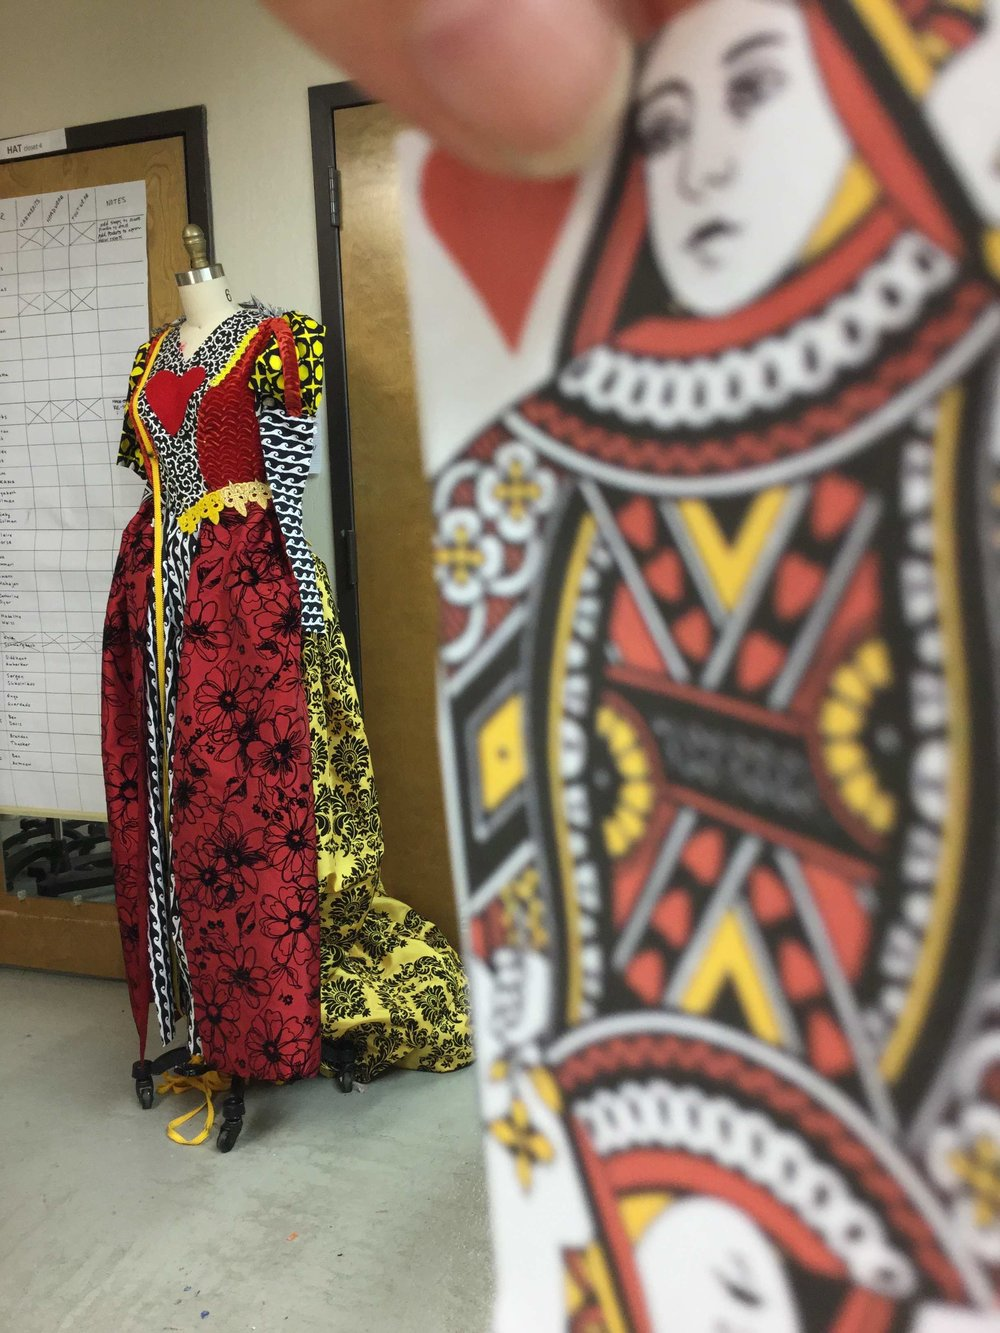 Queen of Hearts Dress, in progress